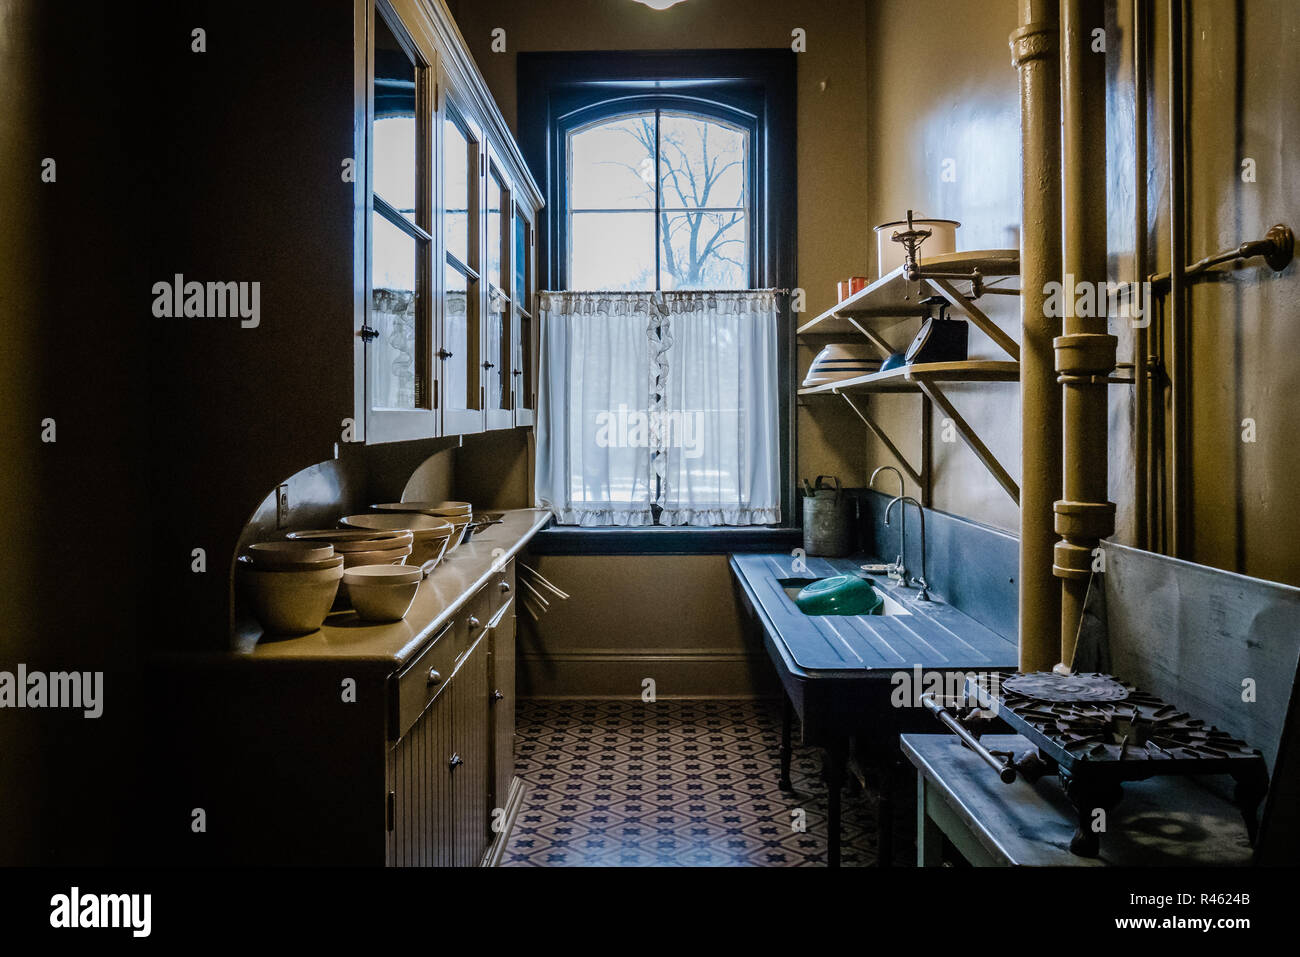 old kitchenmodeled after 1920s wealthy north american home - Stock Image